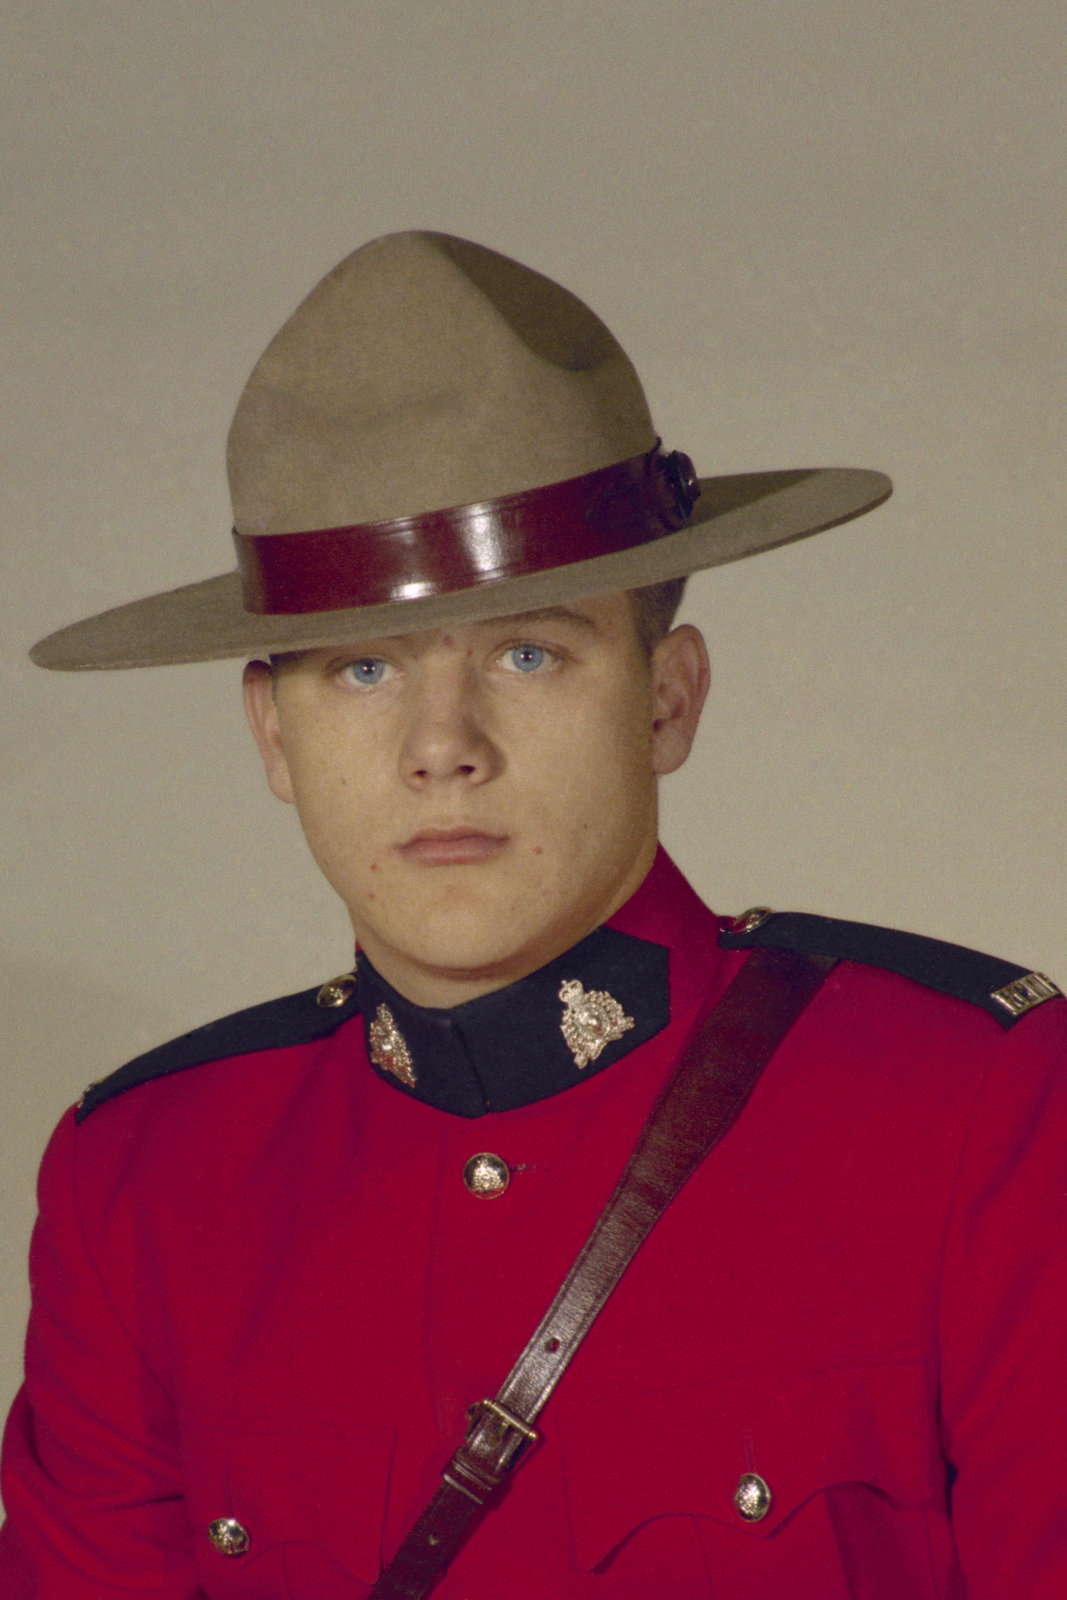 Constable Gerald Vernon Maurice Breese– © Her Majesty the Queen in Right of Canada as represented by the Royal Canadian Mounted Police